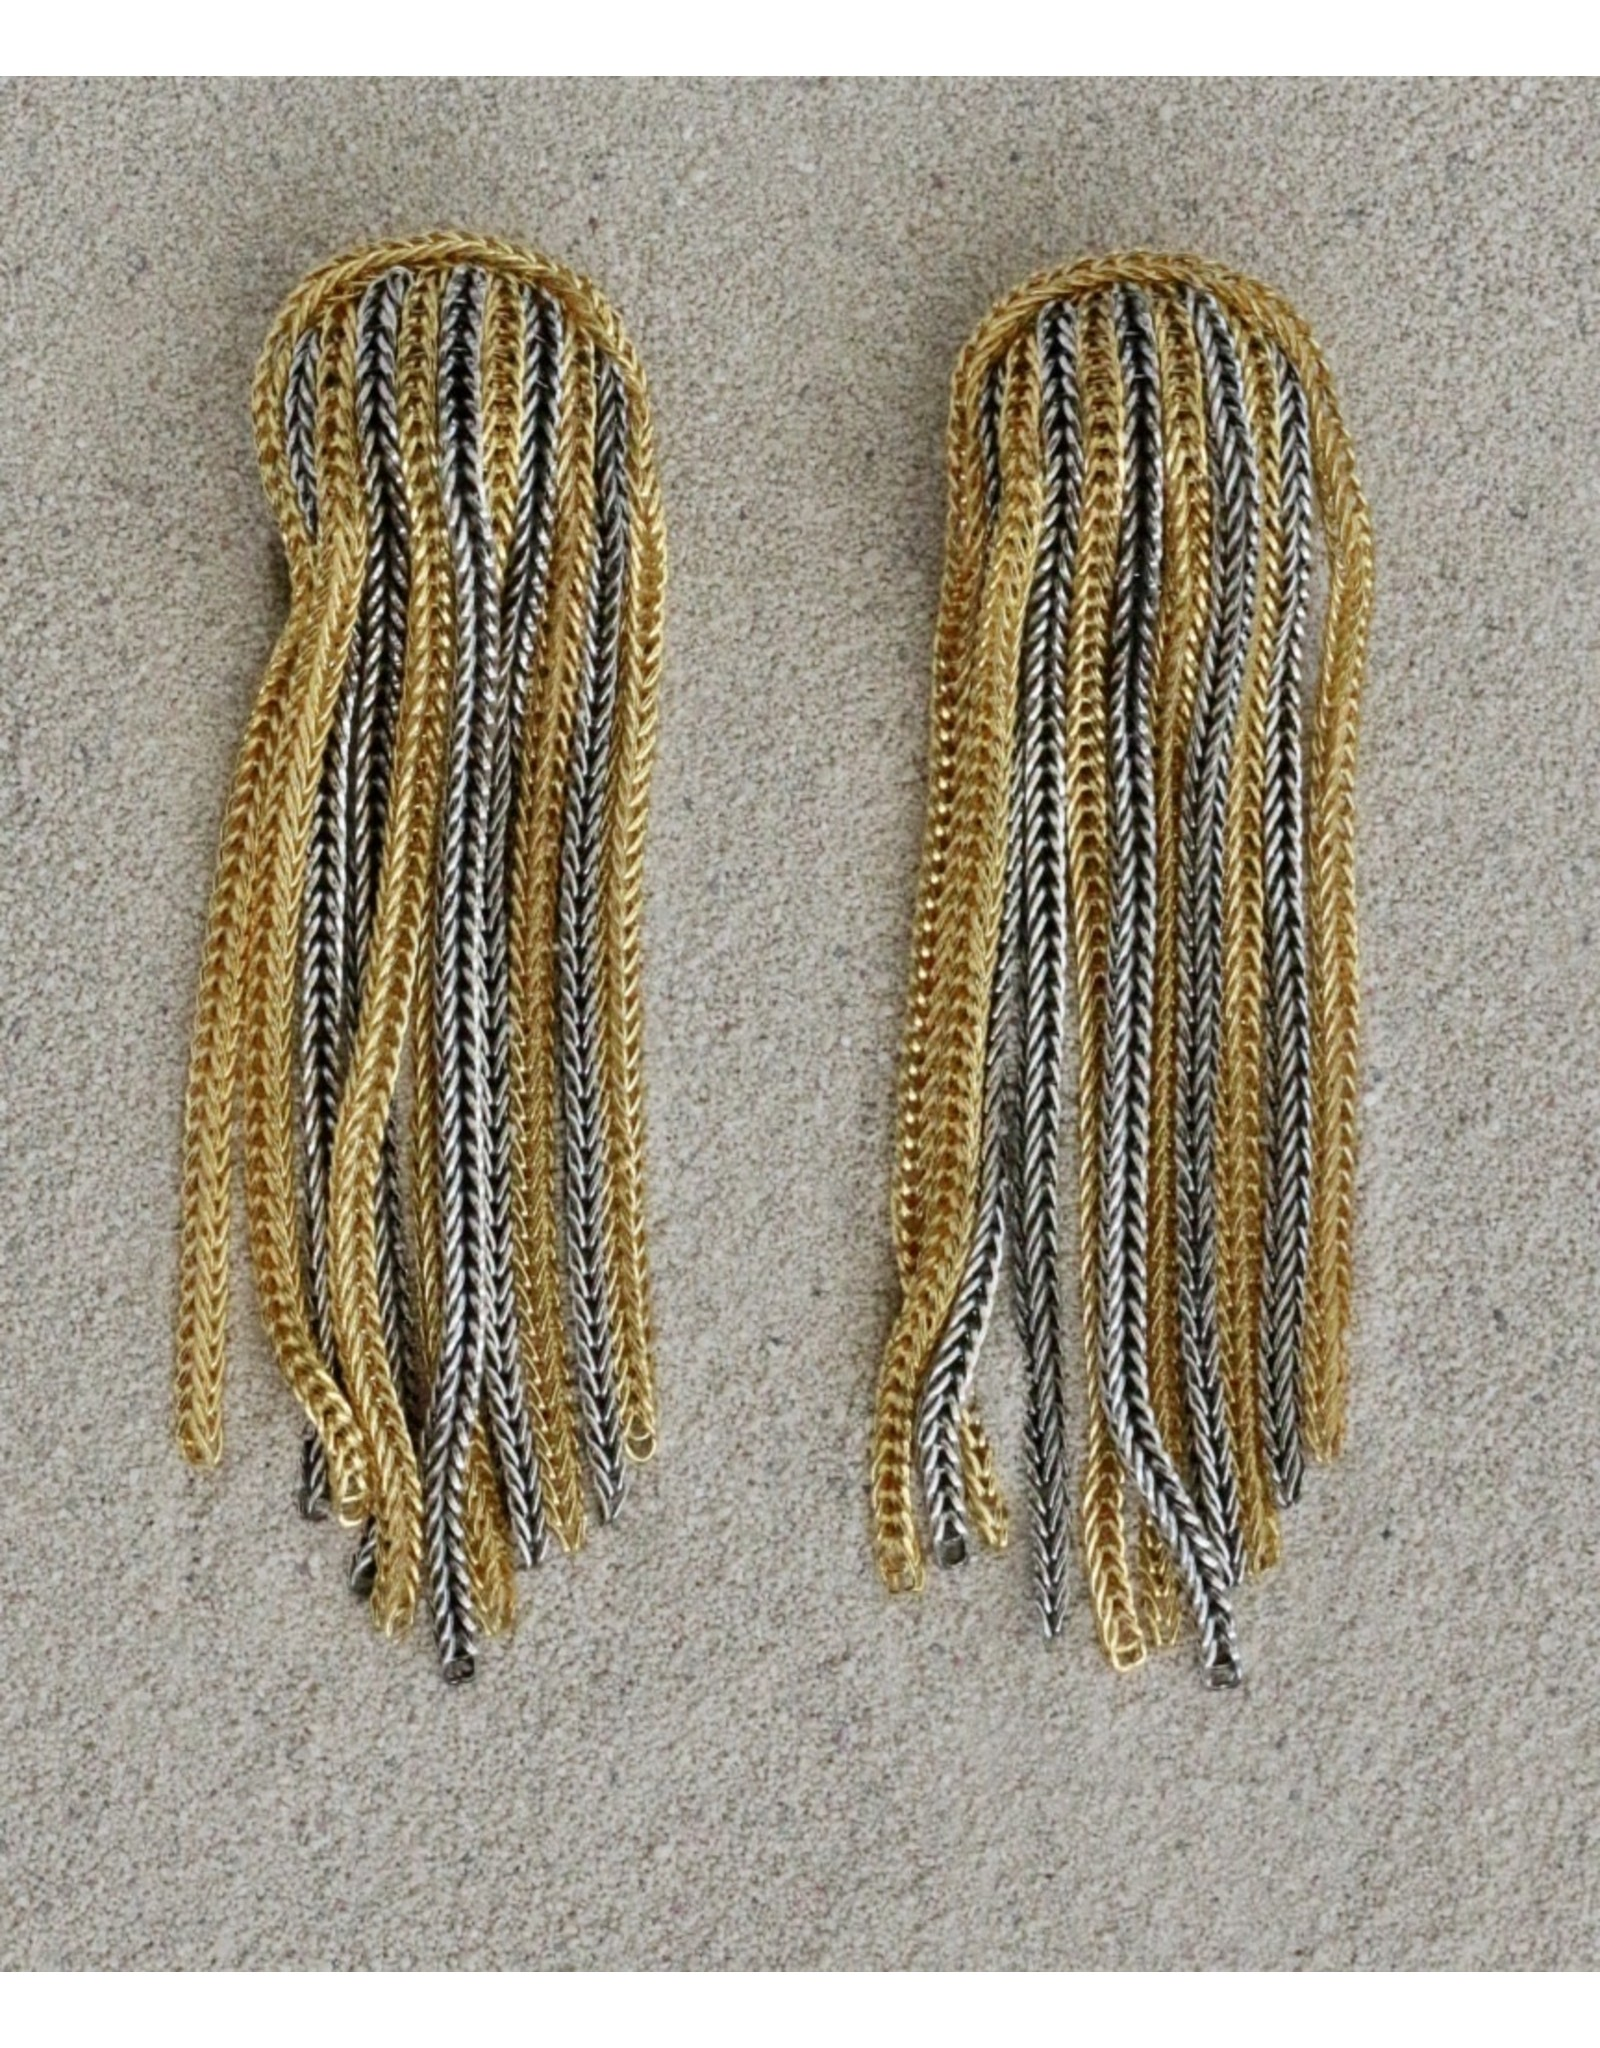 Francoise Montague FMontague: Gold and Silver Tassels